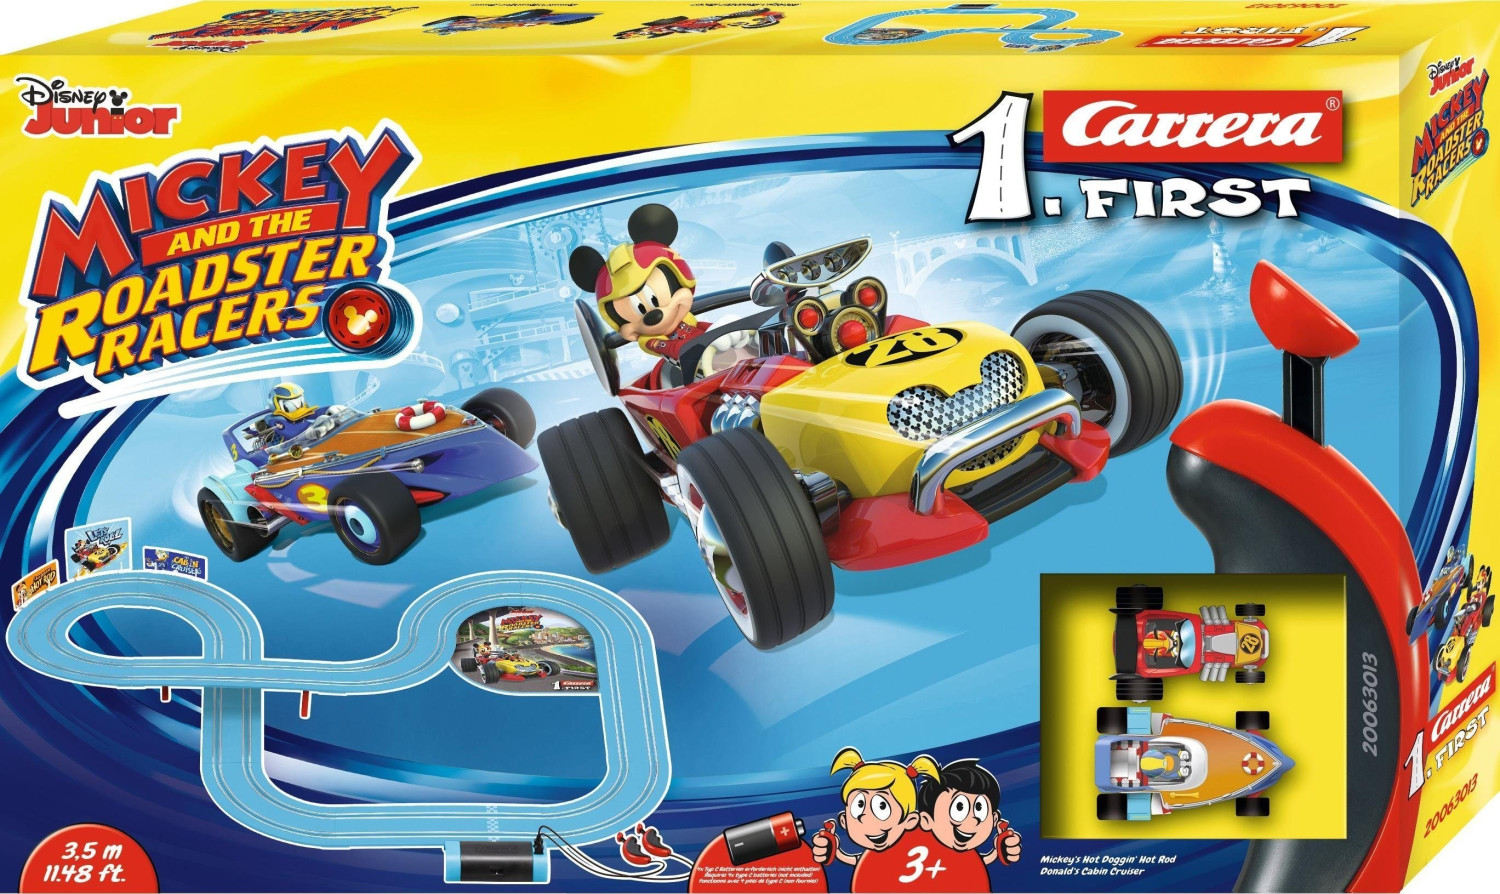 Carrera First Mickey and the Roadster Racers (2...